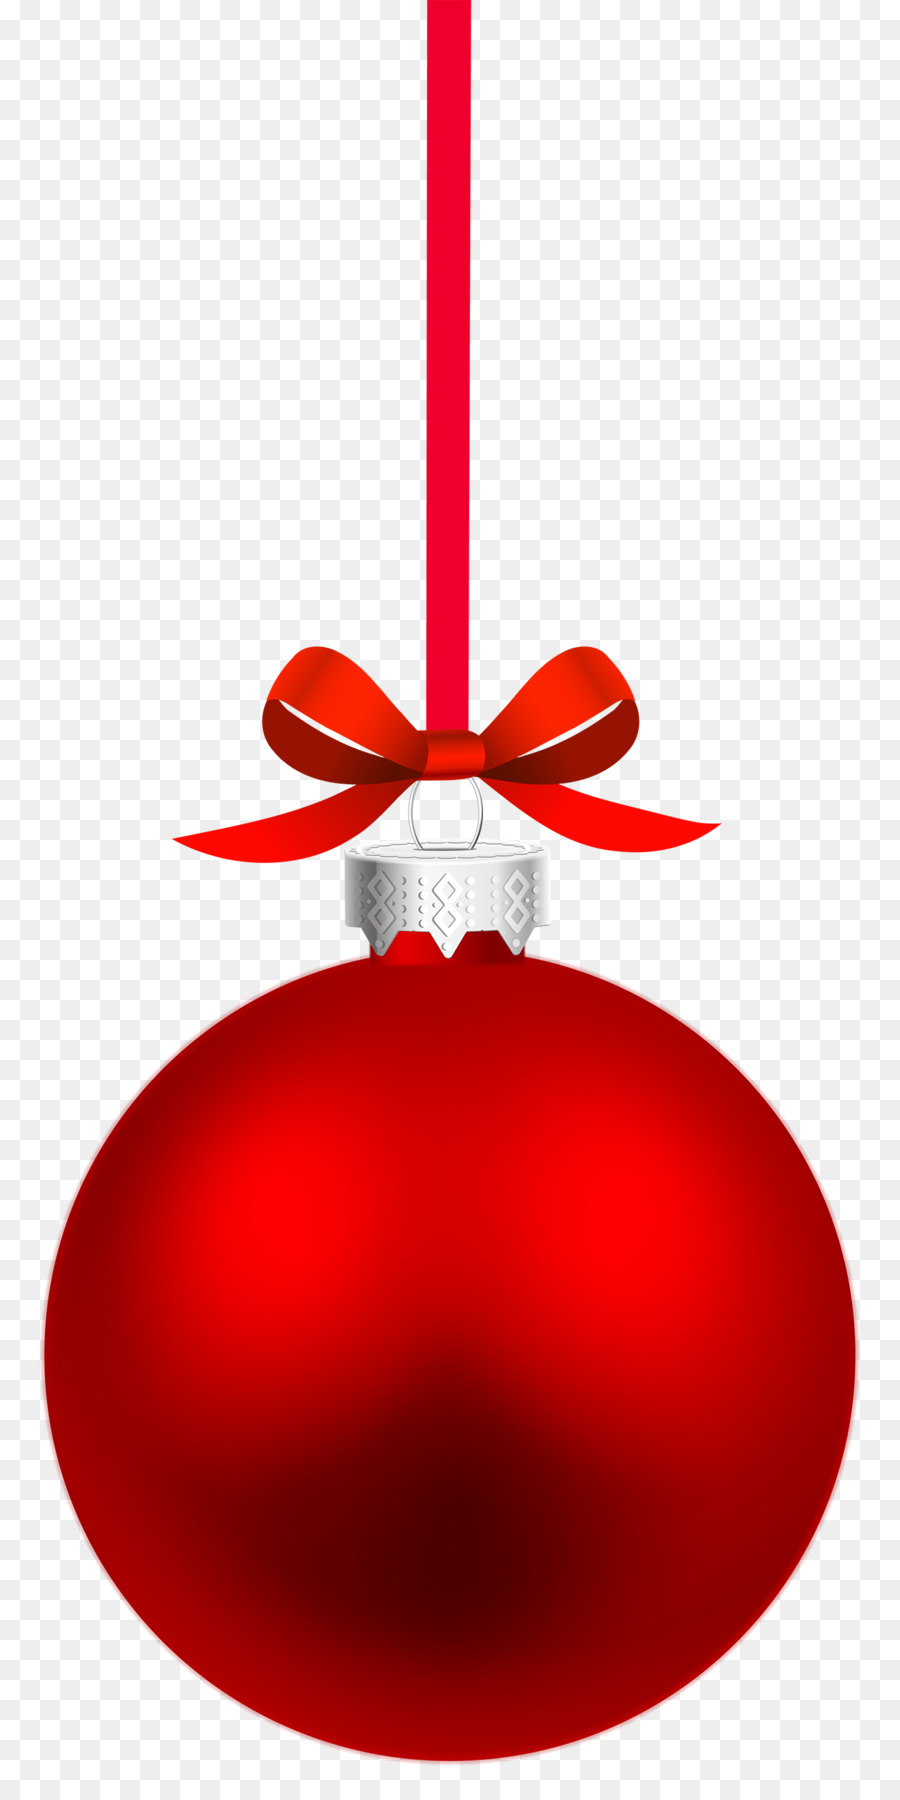 Red Christmas Ornaments.Red Christmas Tree Png Download 1258 2500 Free